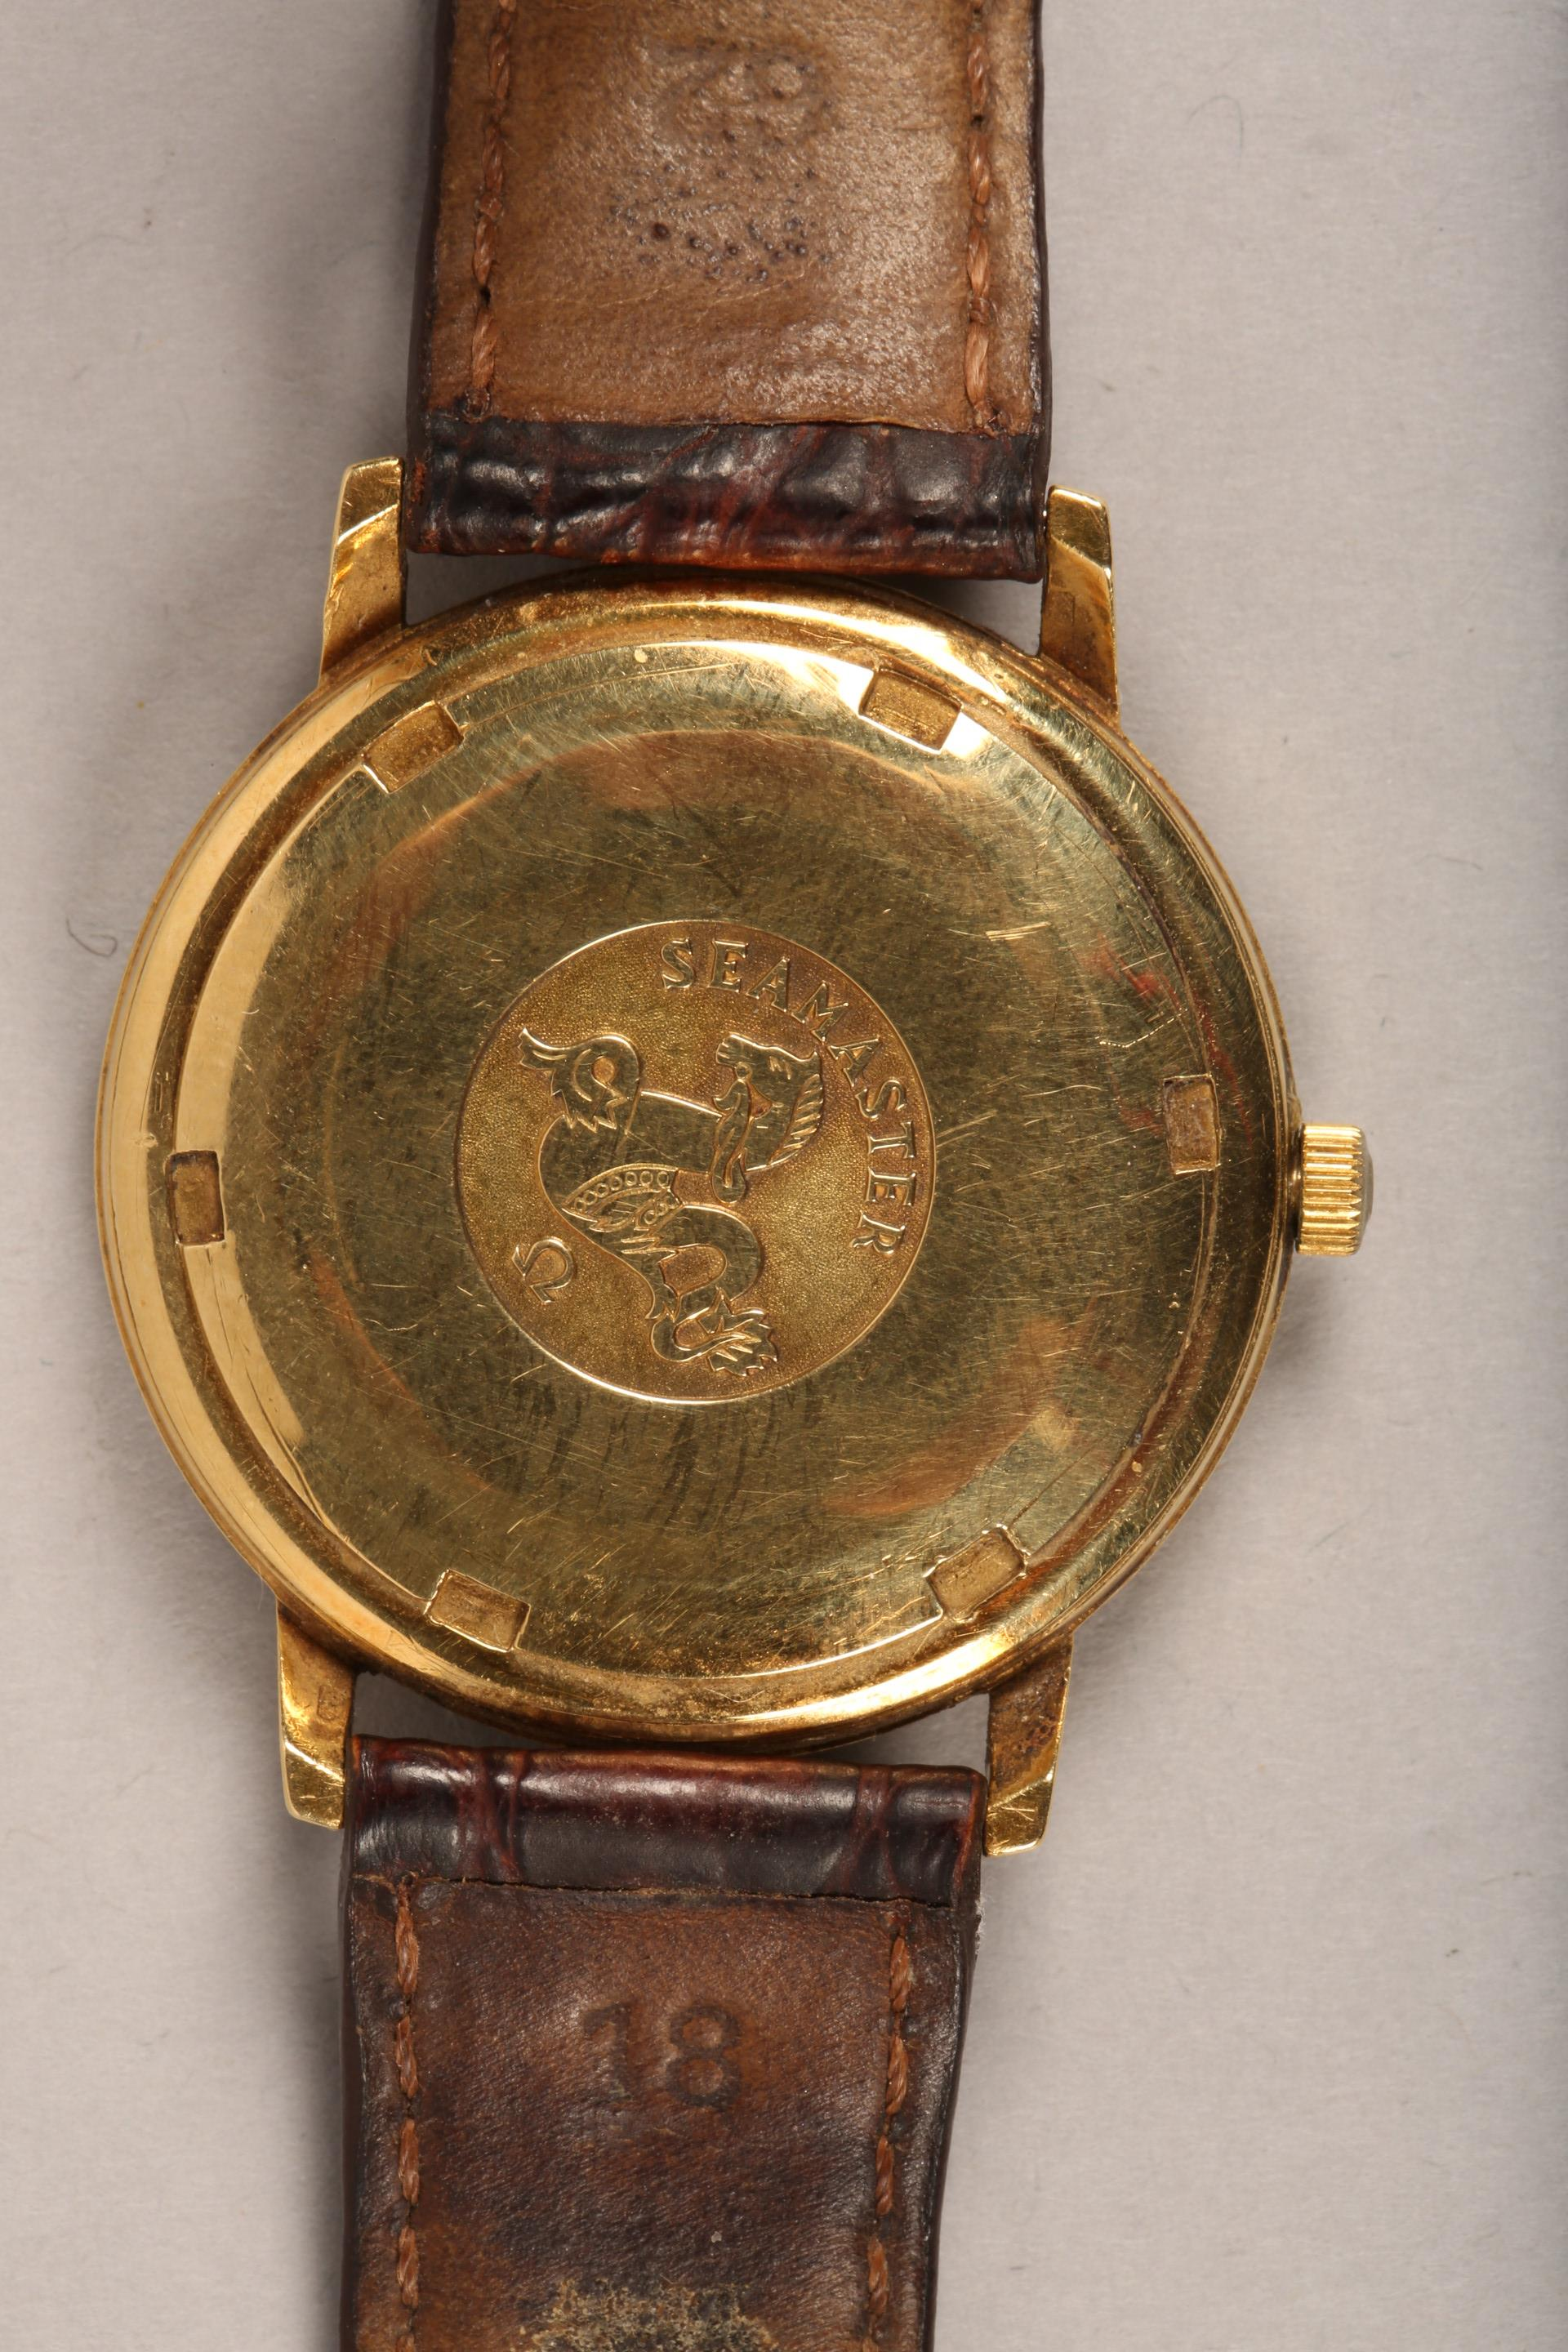 Gents 9 carat gold Omega Seamaster automatic wrist watch, dial with hour markers and sweeping - Image 7 of 10